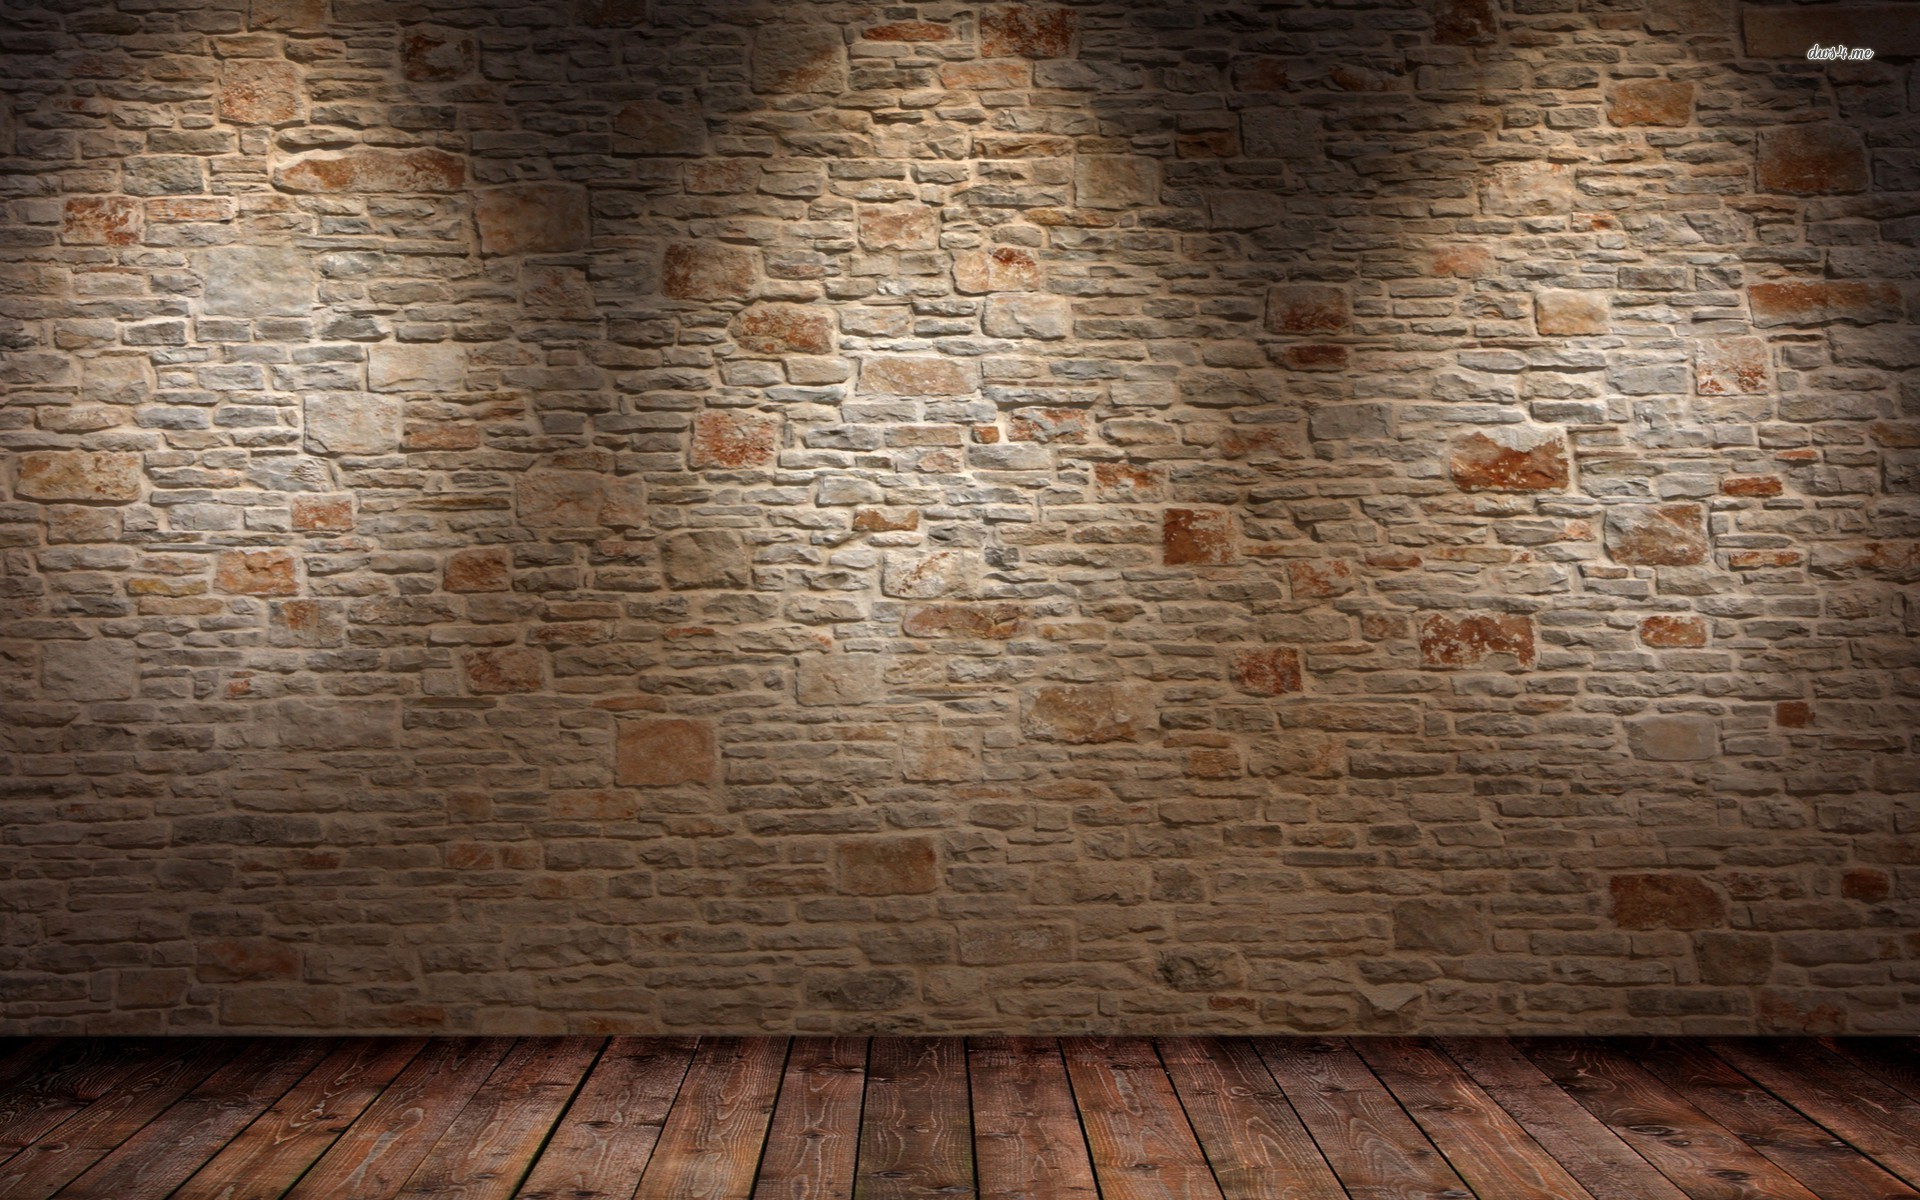 1920x1200 pin Wooden Floor clipart brick wallpaper #5